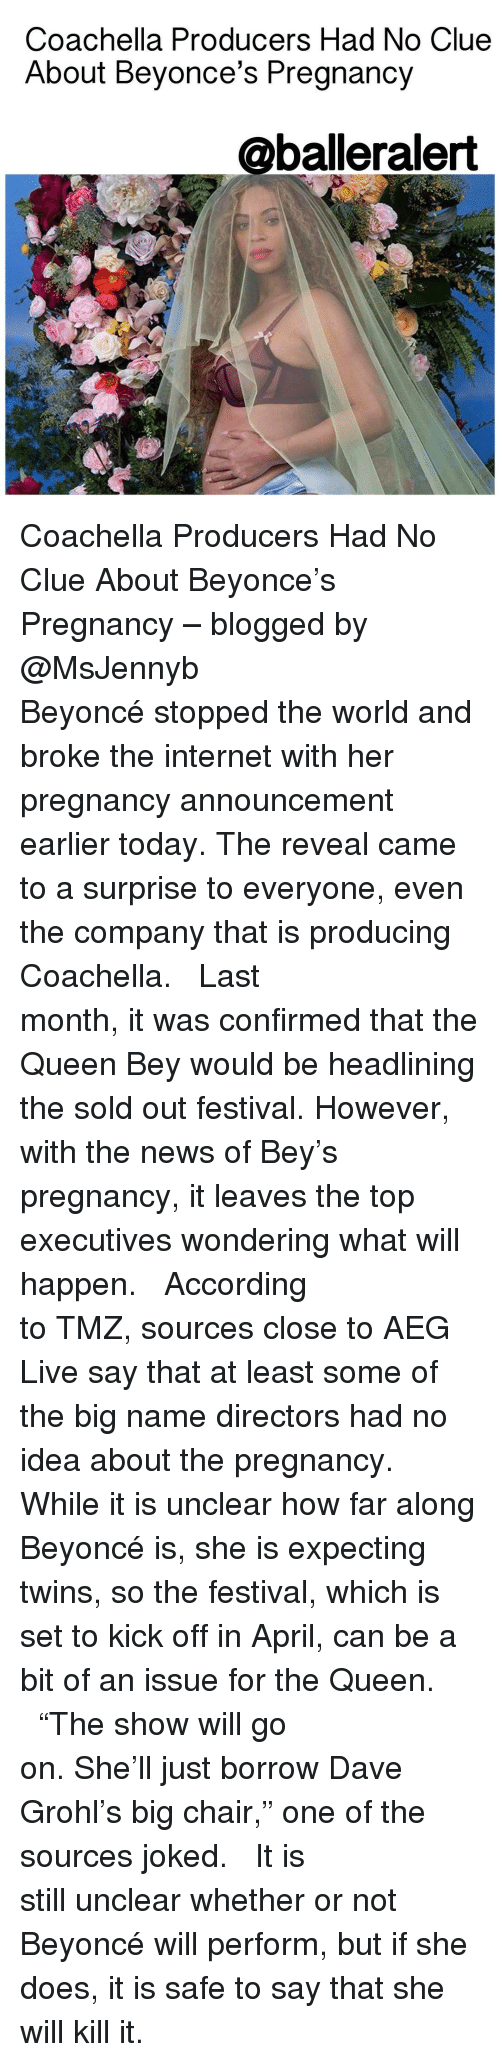 "Coachella, Dave Grohl, and Memes: Coachella Producers Had No Clue  About Beyonce's Pregnancy  @balleralert Coachella Producers Had No Clue About Beyonce's Pregnancy – blogged by @MsJennyb ⠀⠀⠀⠀⠀⠀⠀⠀⠀ ⠀⠀⠀⠀⠀⠀⠀⠀⠀ Beyoncé stopped the world and broke the internet with her pregnancy announcement earlier today. The reveal came to a surprise to everyone, even the company that is producing Coachella. ⠀⠀⠀⠀⠀⠀⠀⠀⠀ ⠀⠀⠀⠀⠀⠀⠀⠀⠀ Last month, it was confirmed that the Queen Bey would be headlining the sold out festival. However, with the news of Bey's pregnancy, it leaves the top executives wondering what will happen. ⠀⠀⠀⠀⠀⠀⠀⠀⠀ ⠀⠀⠀⠀⠀⠀⠀⠀⠀ According to TMZ, sources close to AEG Live say that at least some of the big name directors had no idea about the pregnancy. While it is unclear how far along Beyoncé is, she is expecting twins, so the festival, which is set to kick off in April, can be a bit of an issue for the Queen. ⠀⠀⠀⠀⠀⠀⠀⠀⠀ ⠀⠀⠀⠀⠀⠀⠀⠀⠀ ""The show will go on. She'll just borrow Dave Grohl's big chair,"" one of the sources joked. ⠀⠀⠀⠀⠀⠀⠀⠀⠀ ⠀⠀⠀⠀⠀⠀⠀⠀ It is still unclear whether or not Beyoncé will perform, but if she does, it is safe to say that she will kill it."